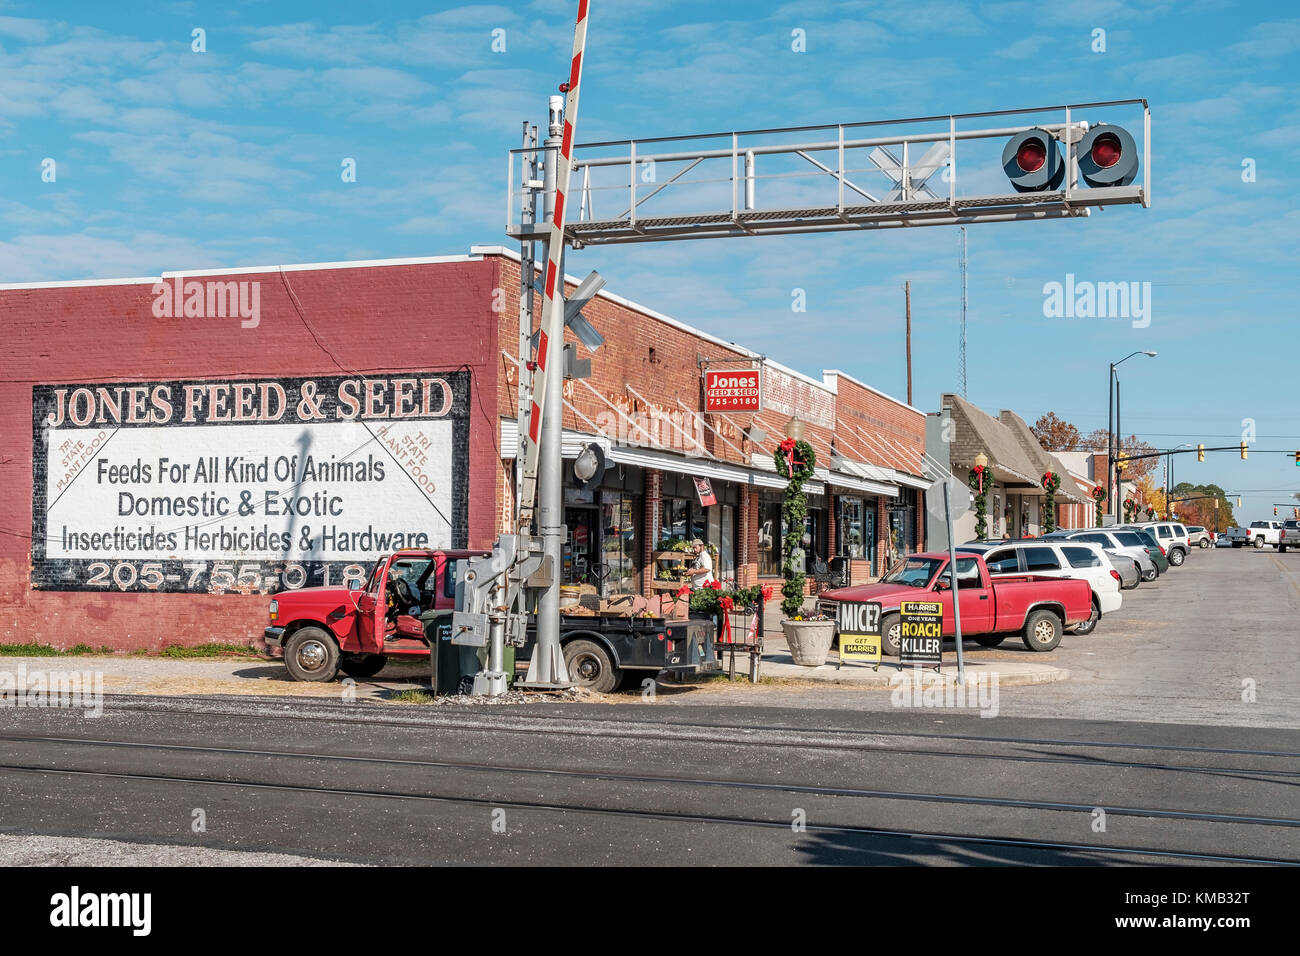 Small rural feed and seed store in Clanton Alabama, USA. - Stock Image